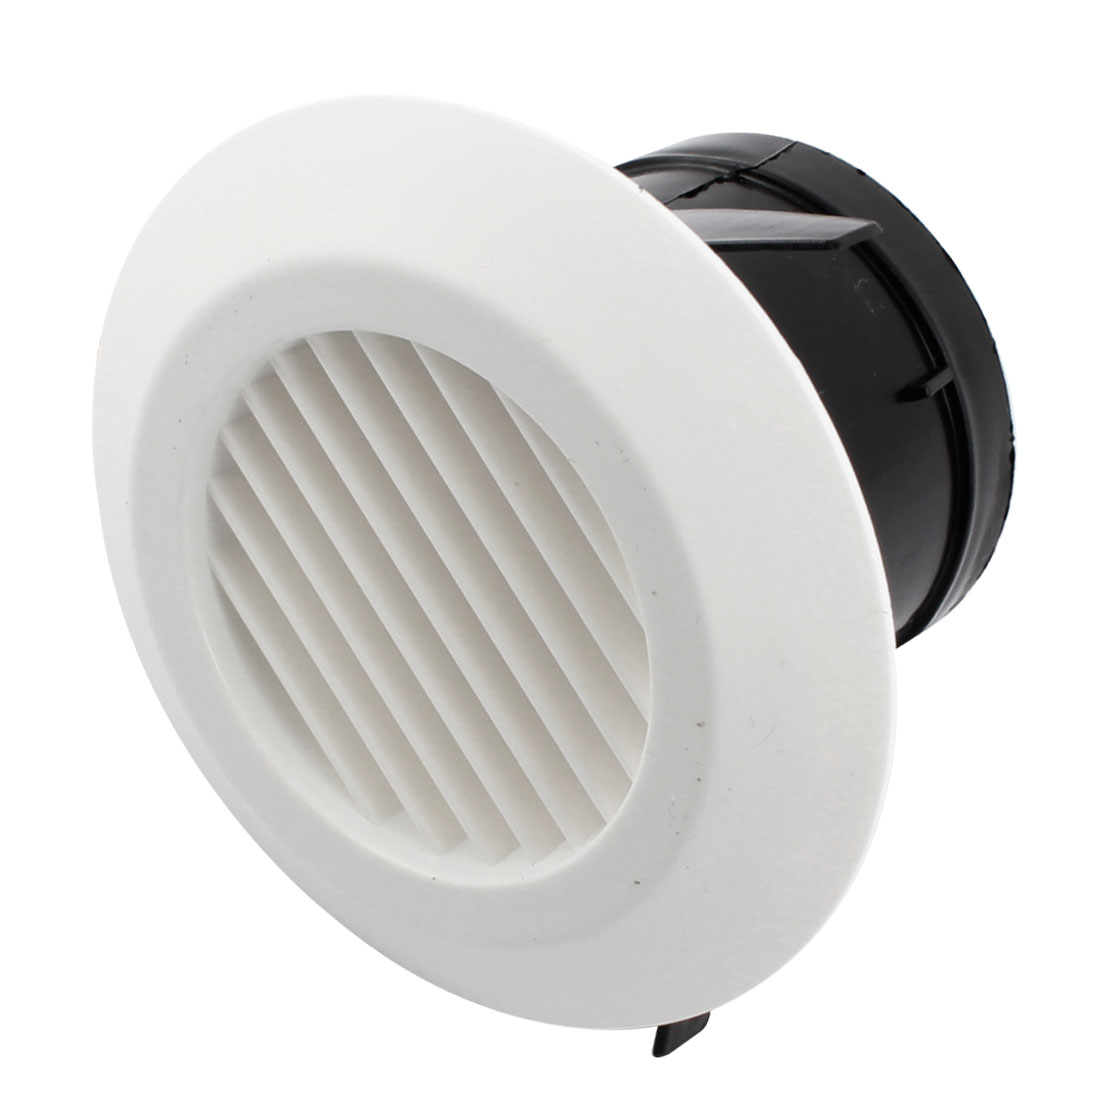 75mm Round Ducting Circle Air Vent Grill Outlet Straight Louver Ventilation Cover Flange